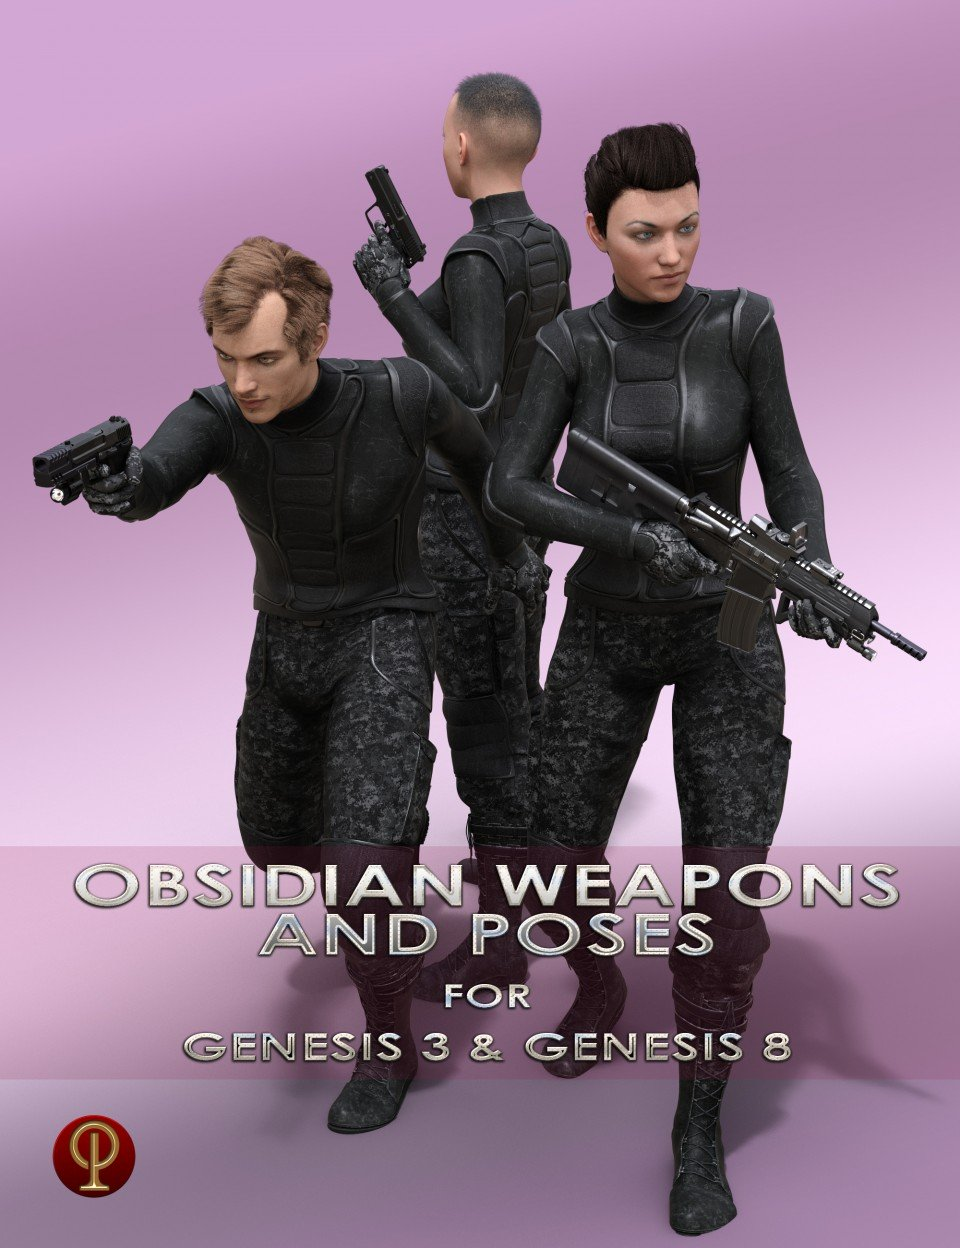 Obsidian Weapons and Poses for Genesis 3 and 8 Male and Female_DAZ3D下载站